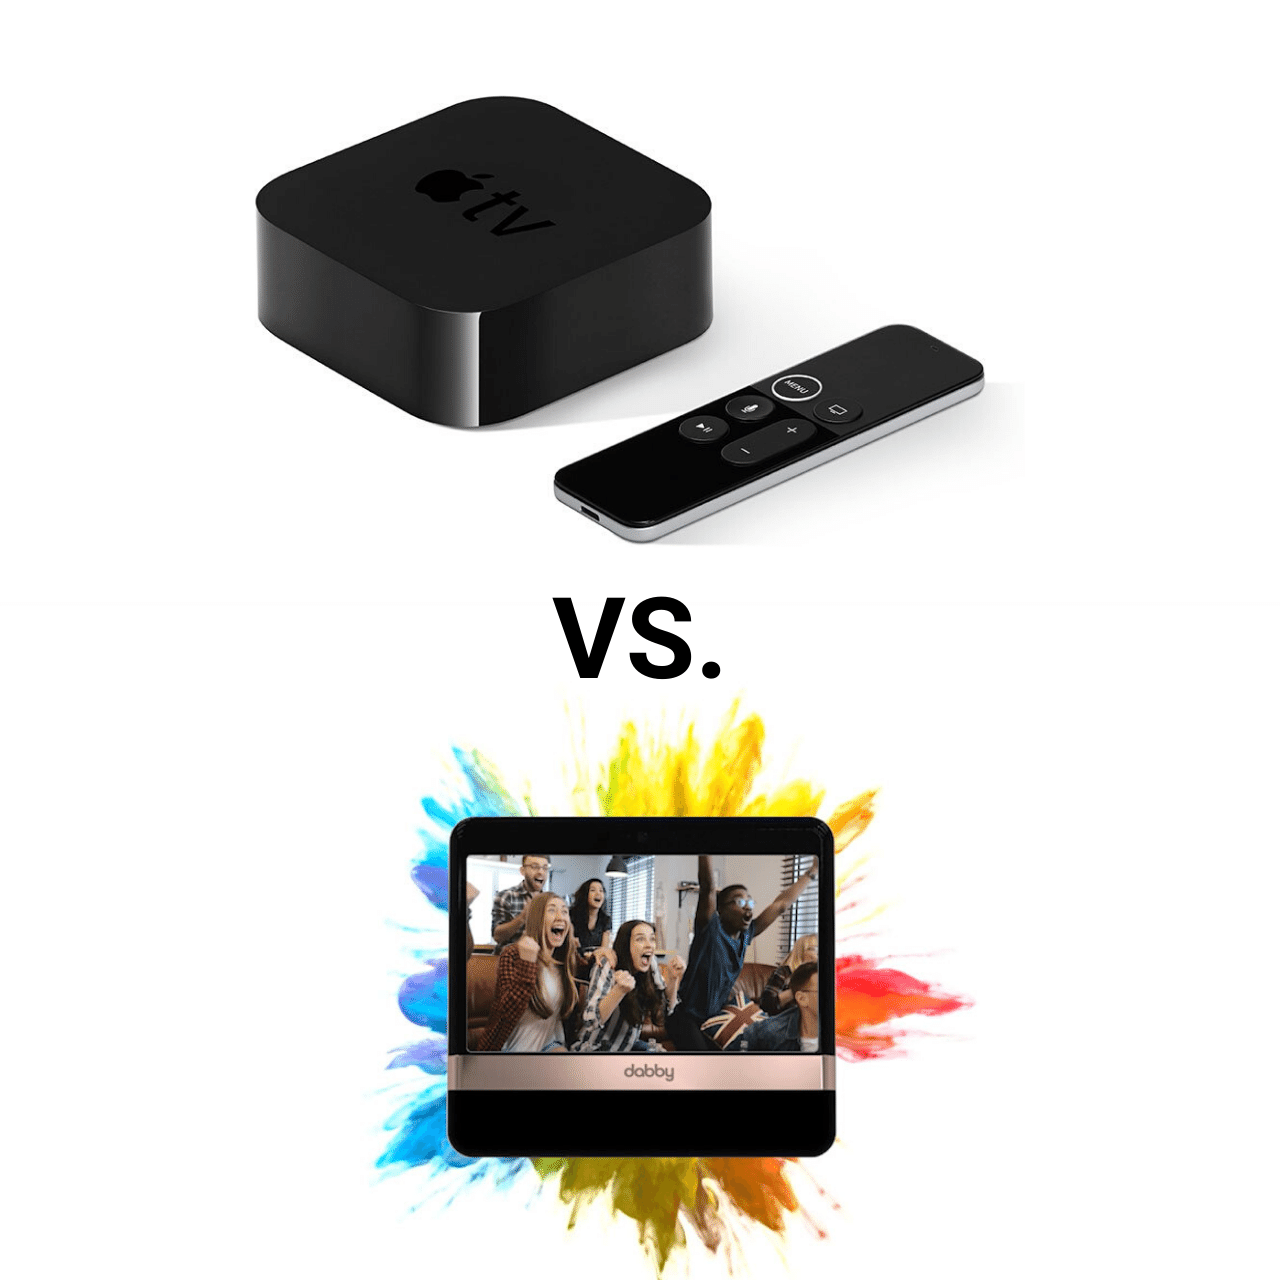 Apple TV vs Dabby by Dabkick (2020)